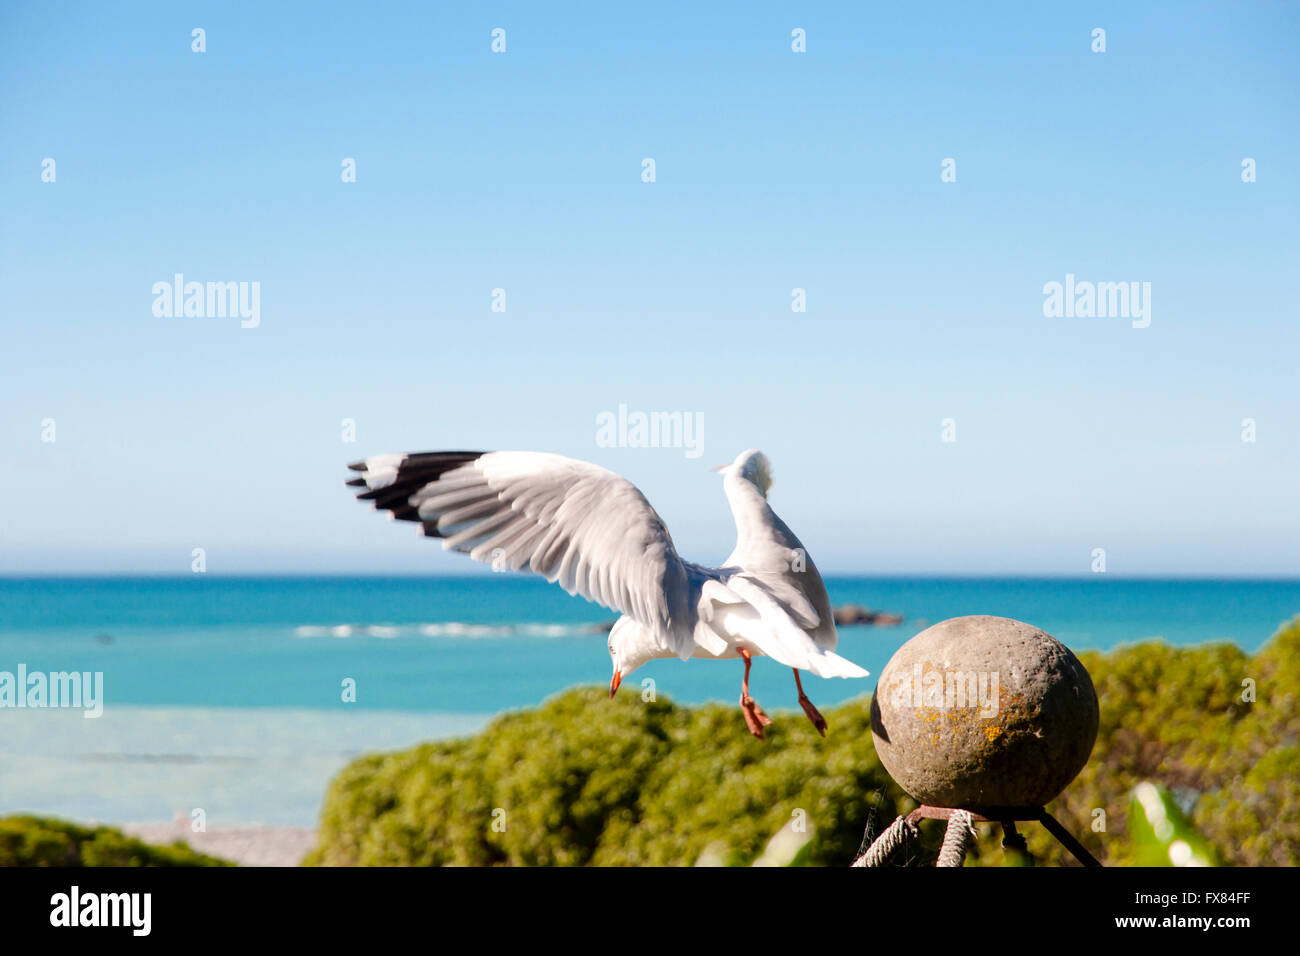 Seagull Takeoff - New Zealand - Stock Image